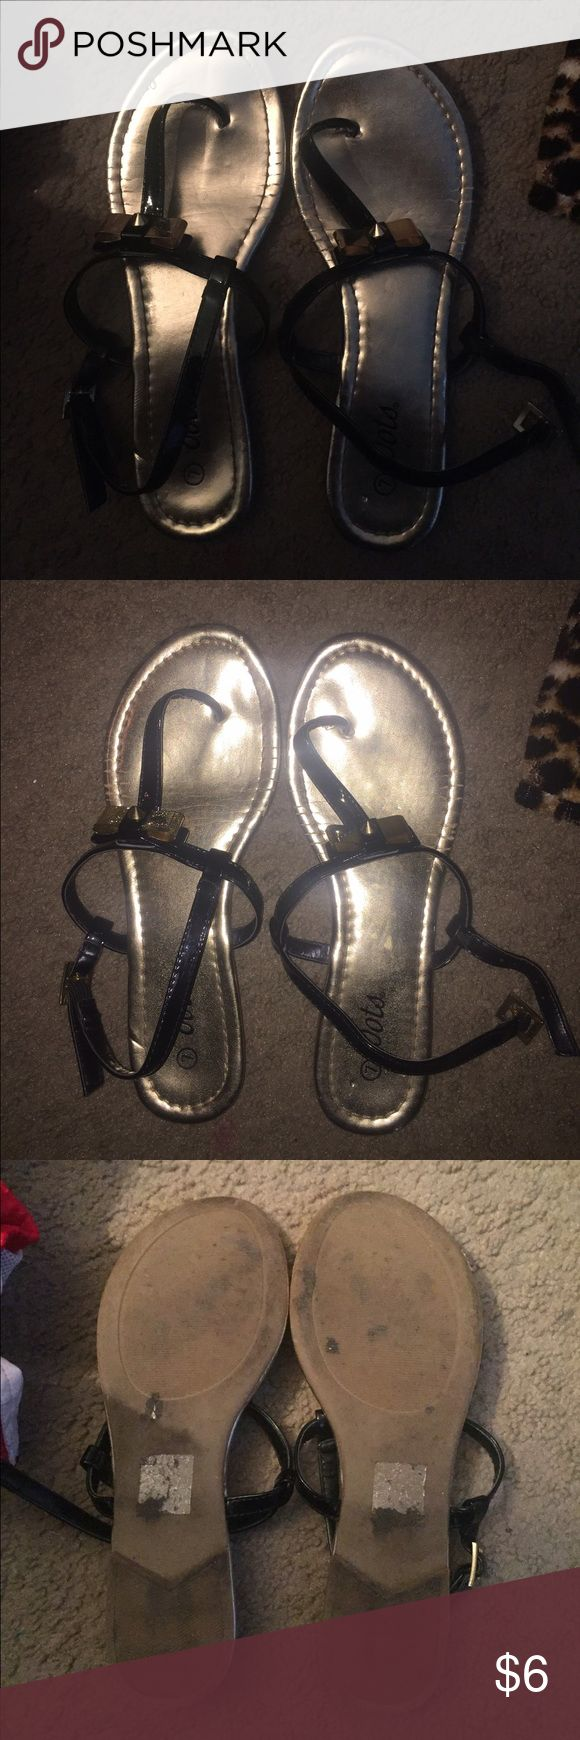 Dots Sandals these are pretty worn & that's why they are listed so cheap. still in tack though. super cute to dress down or fancy up! Dots Shoes Sandals